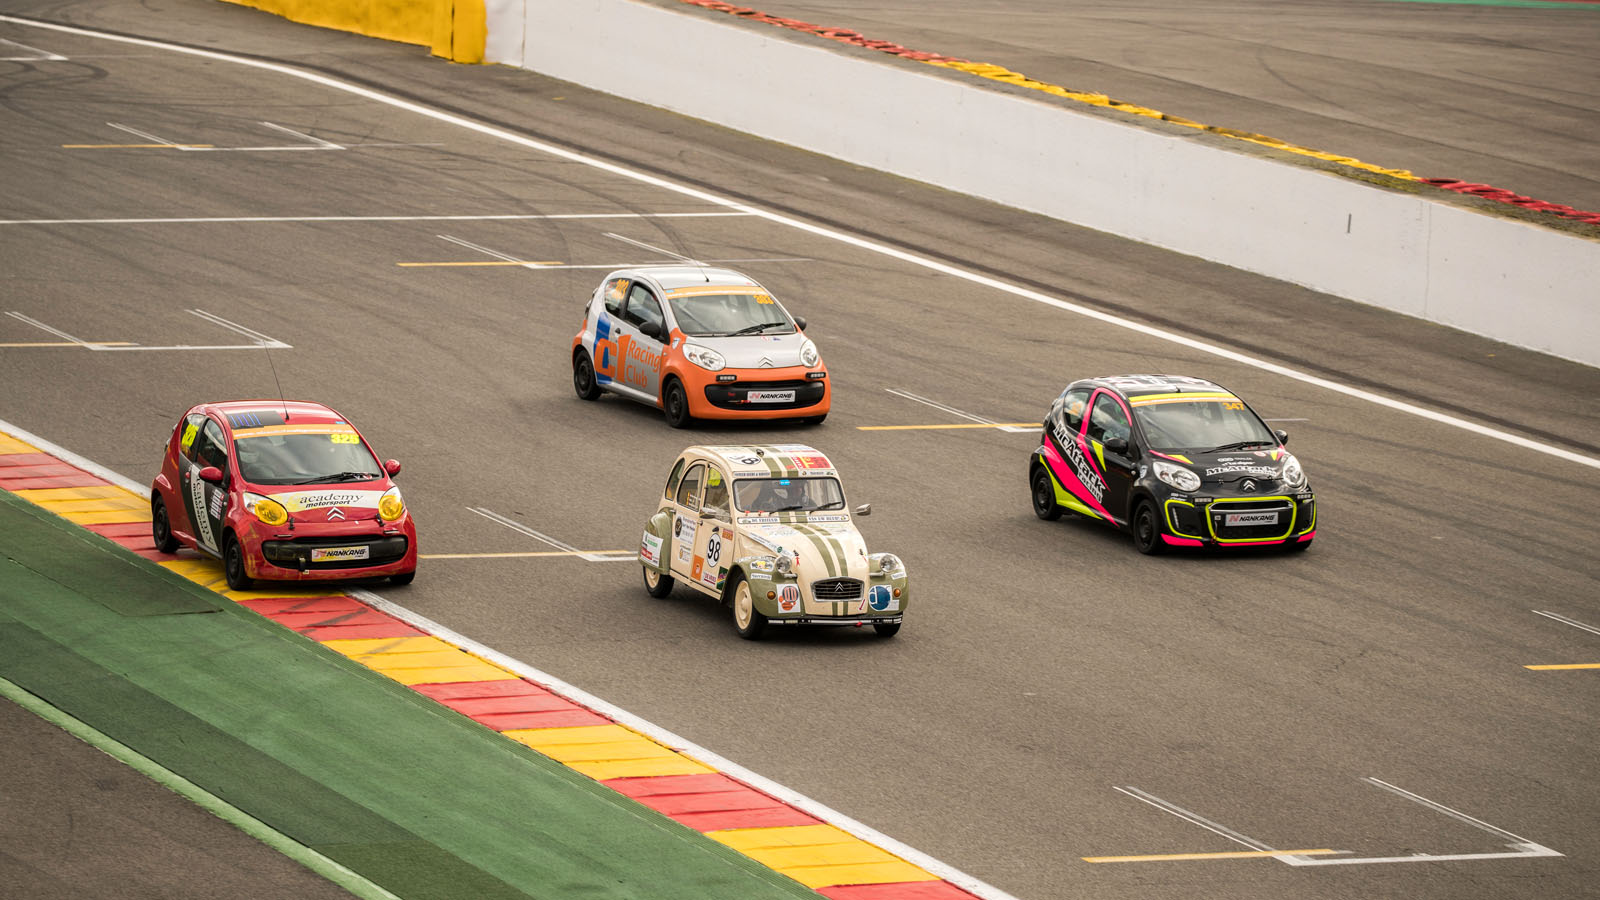 24-hour racing in a Citroen C1: the most fun race on Earth? | Autocar